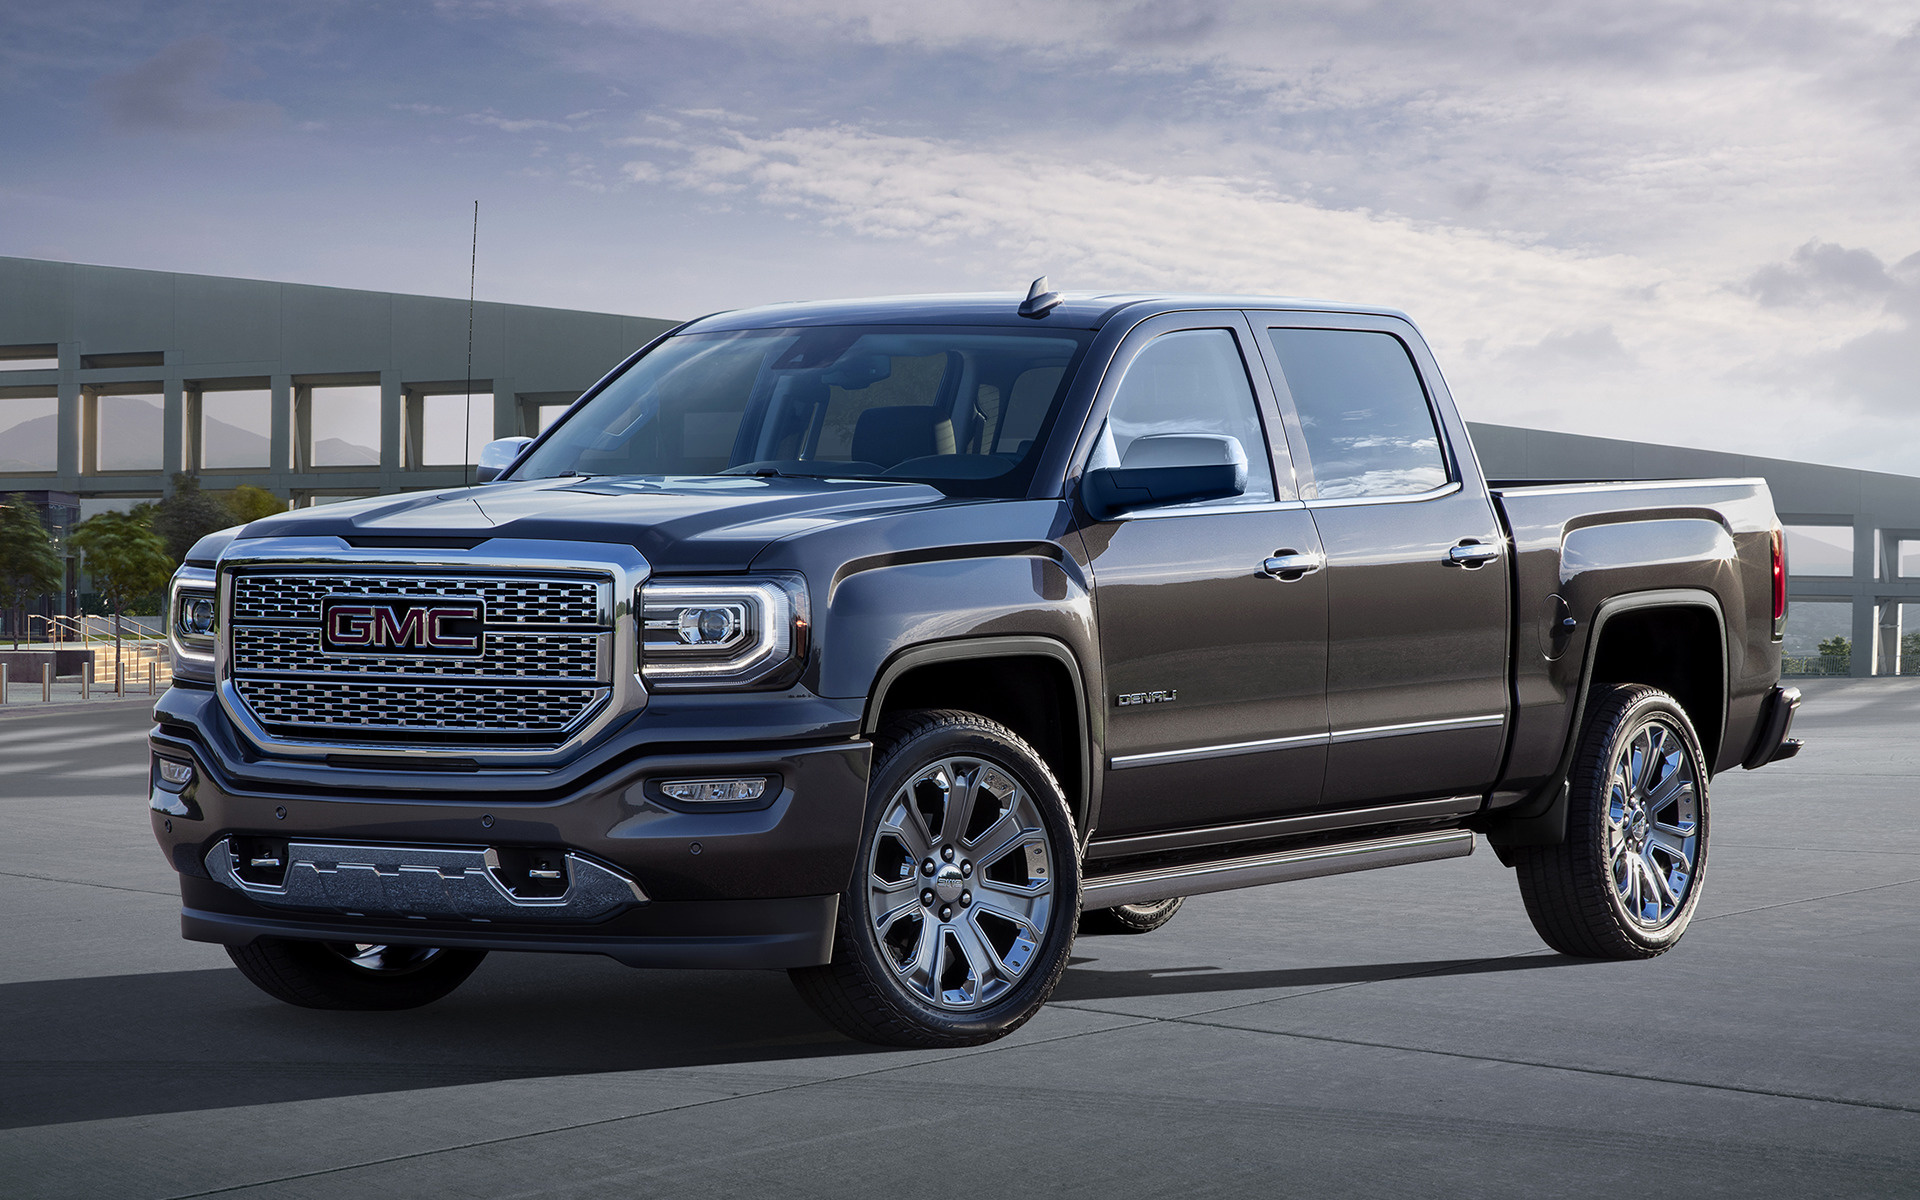 2017 GMC Sierra 2500 HD SLT Extended Cab photo - 2